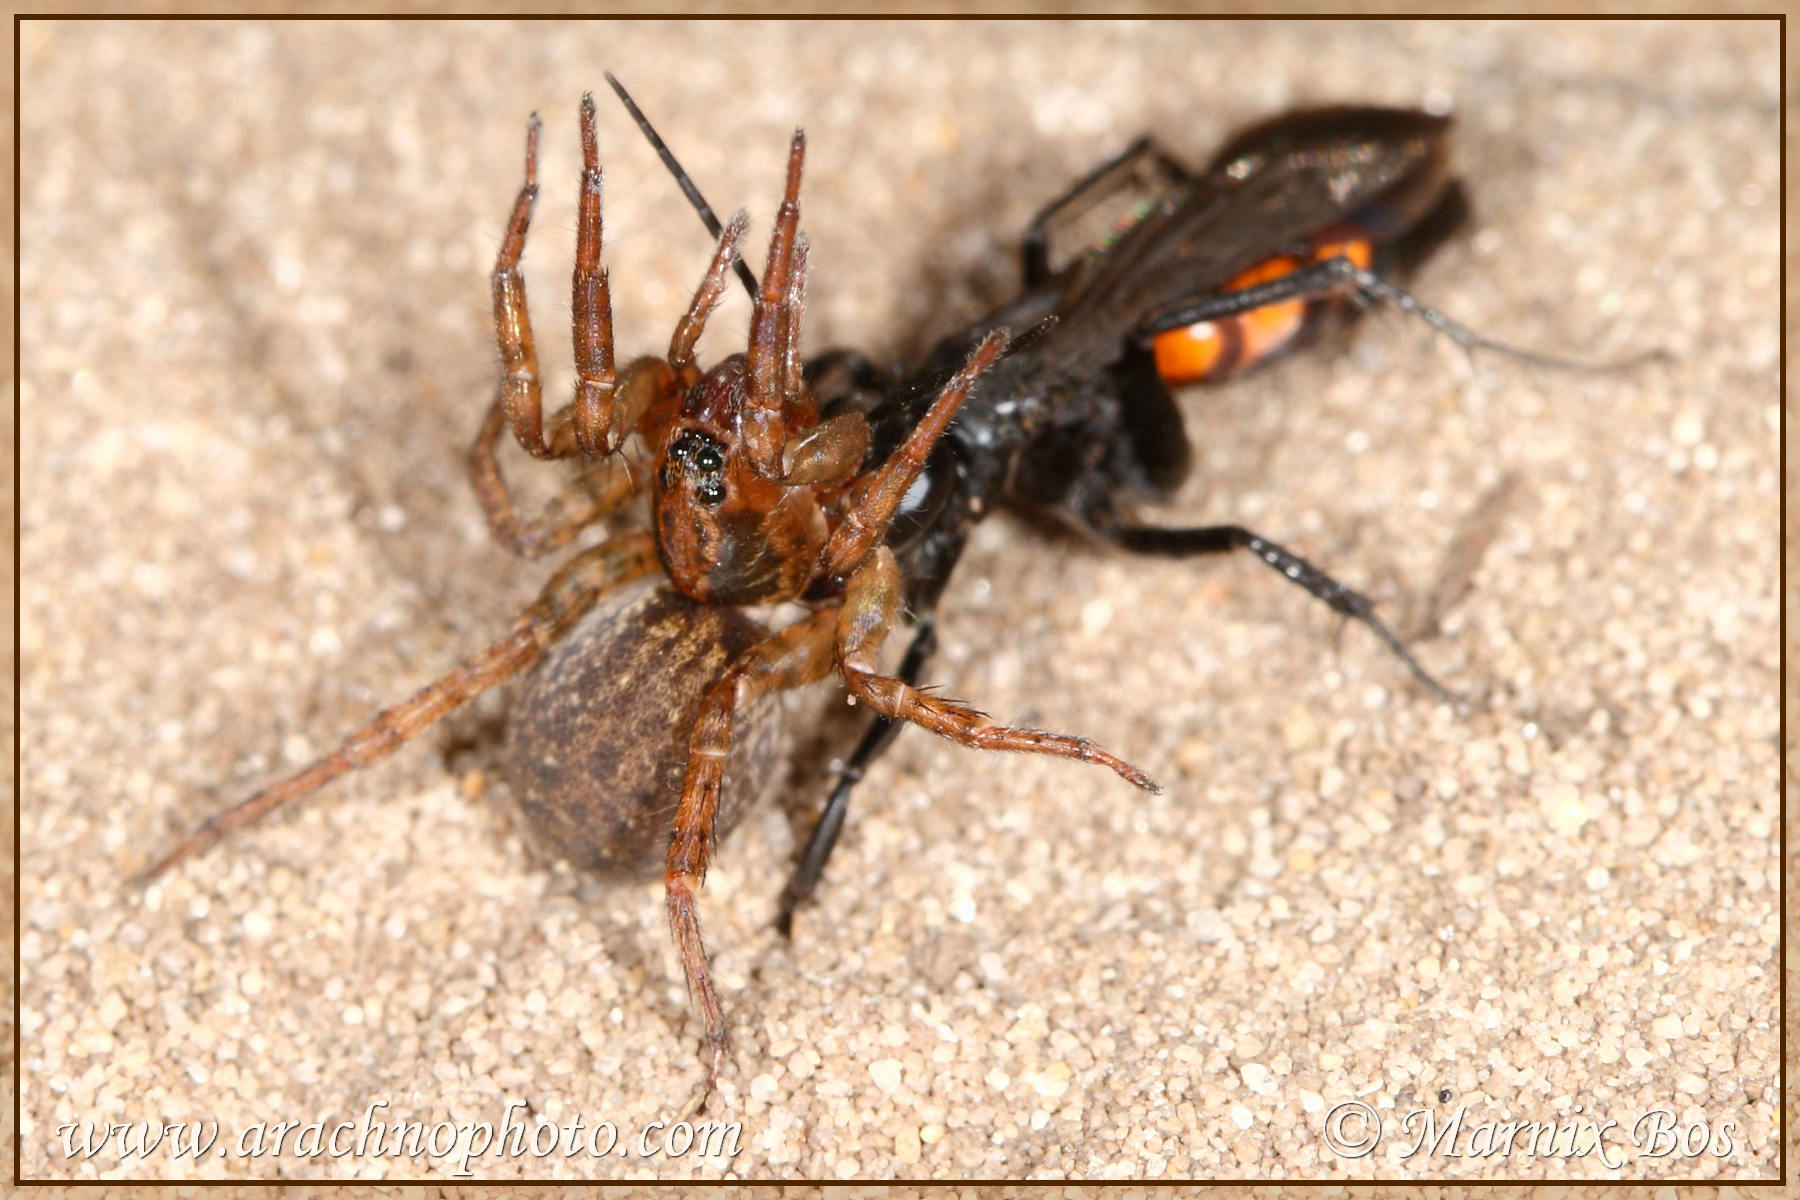 Female, paralysed by wasp